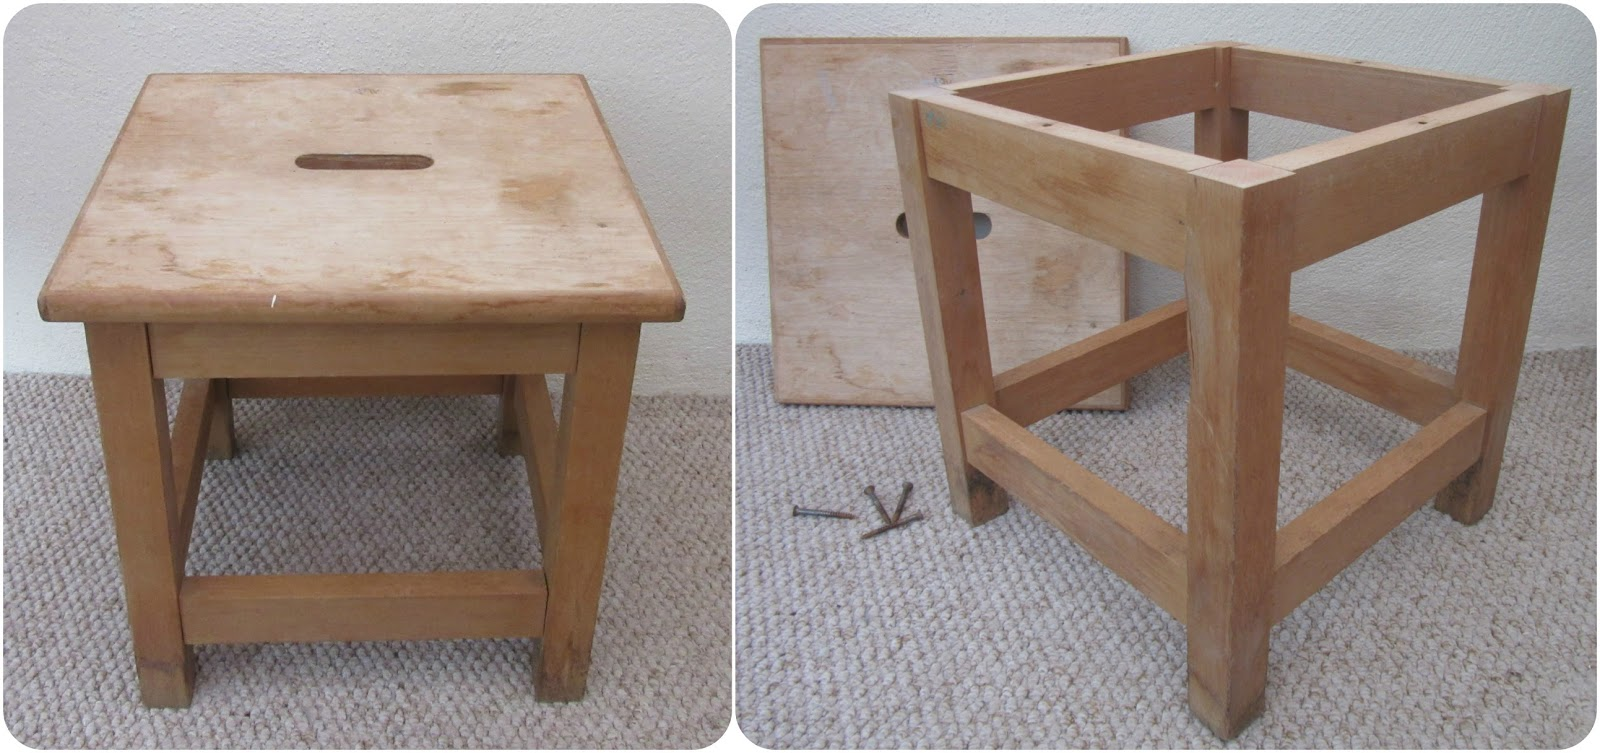 Two photos of small square stool in disrepair